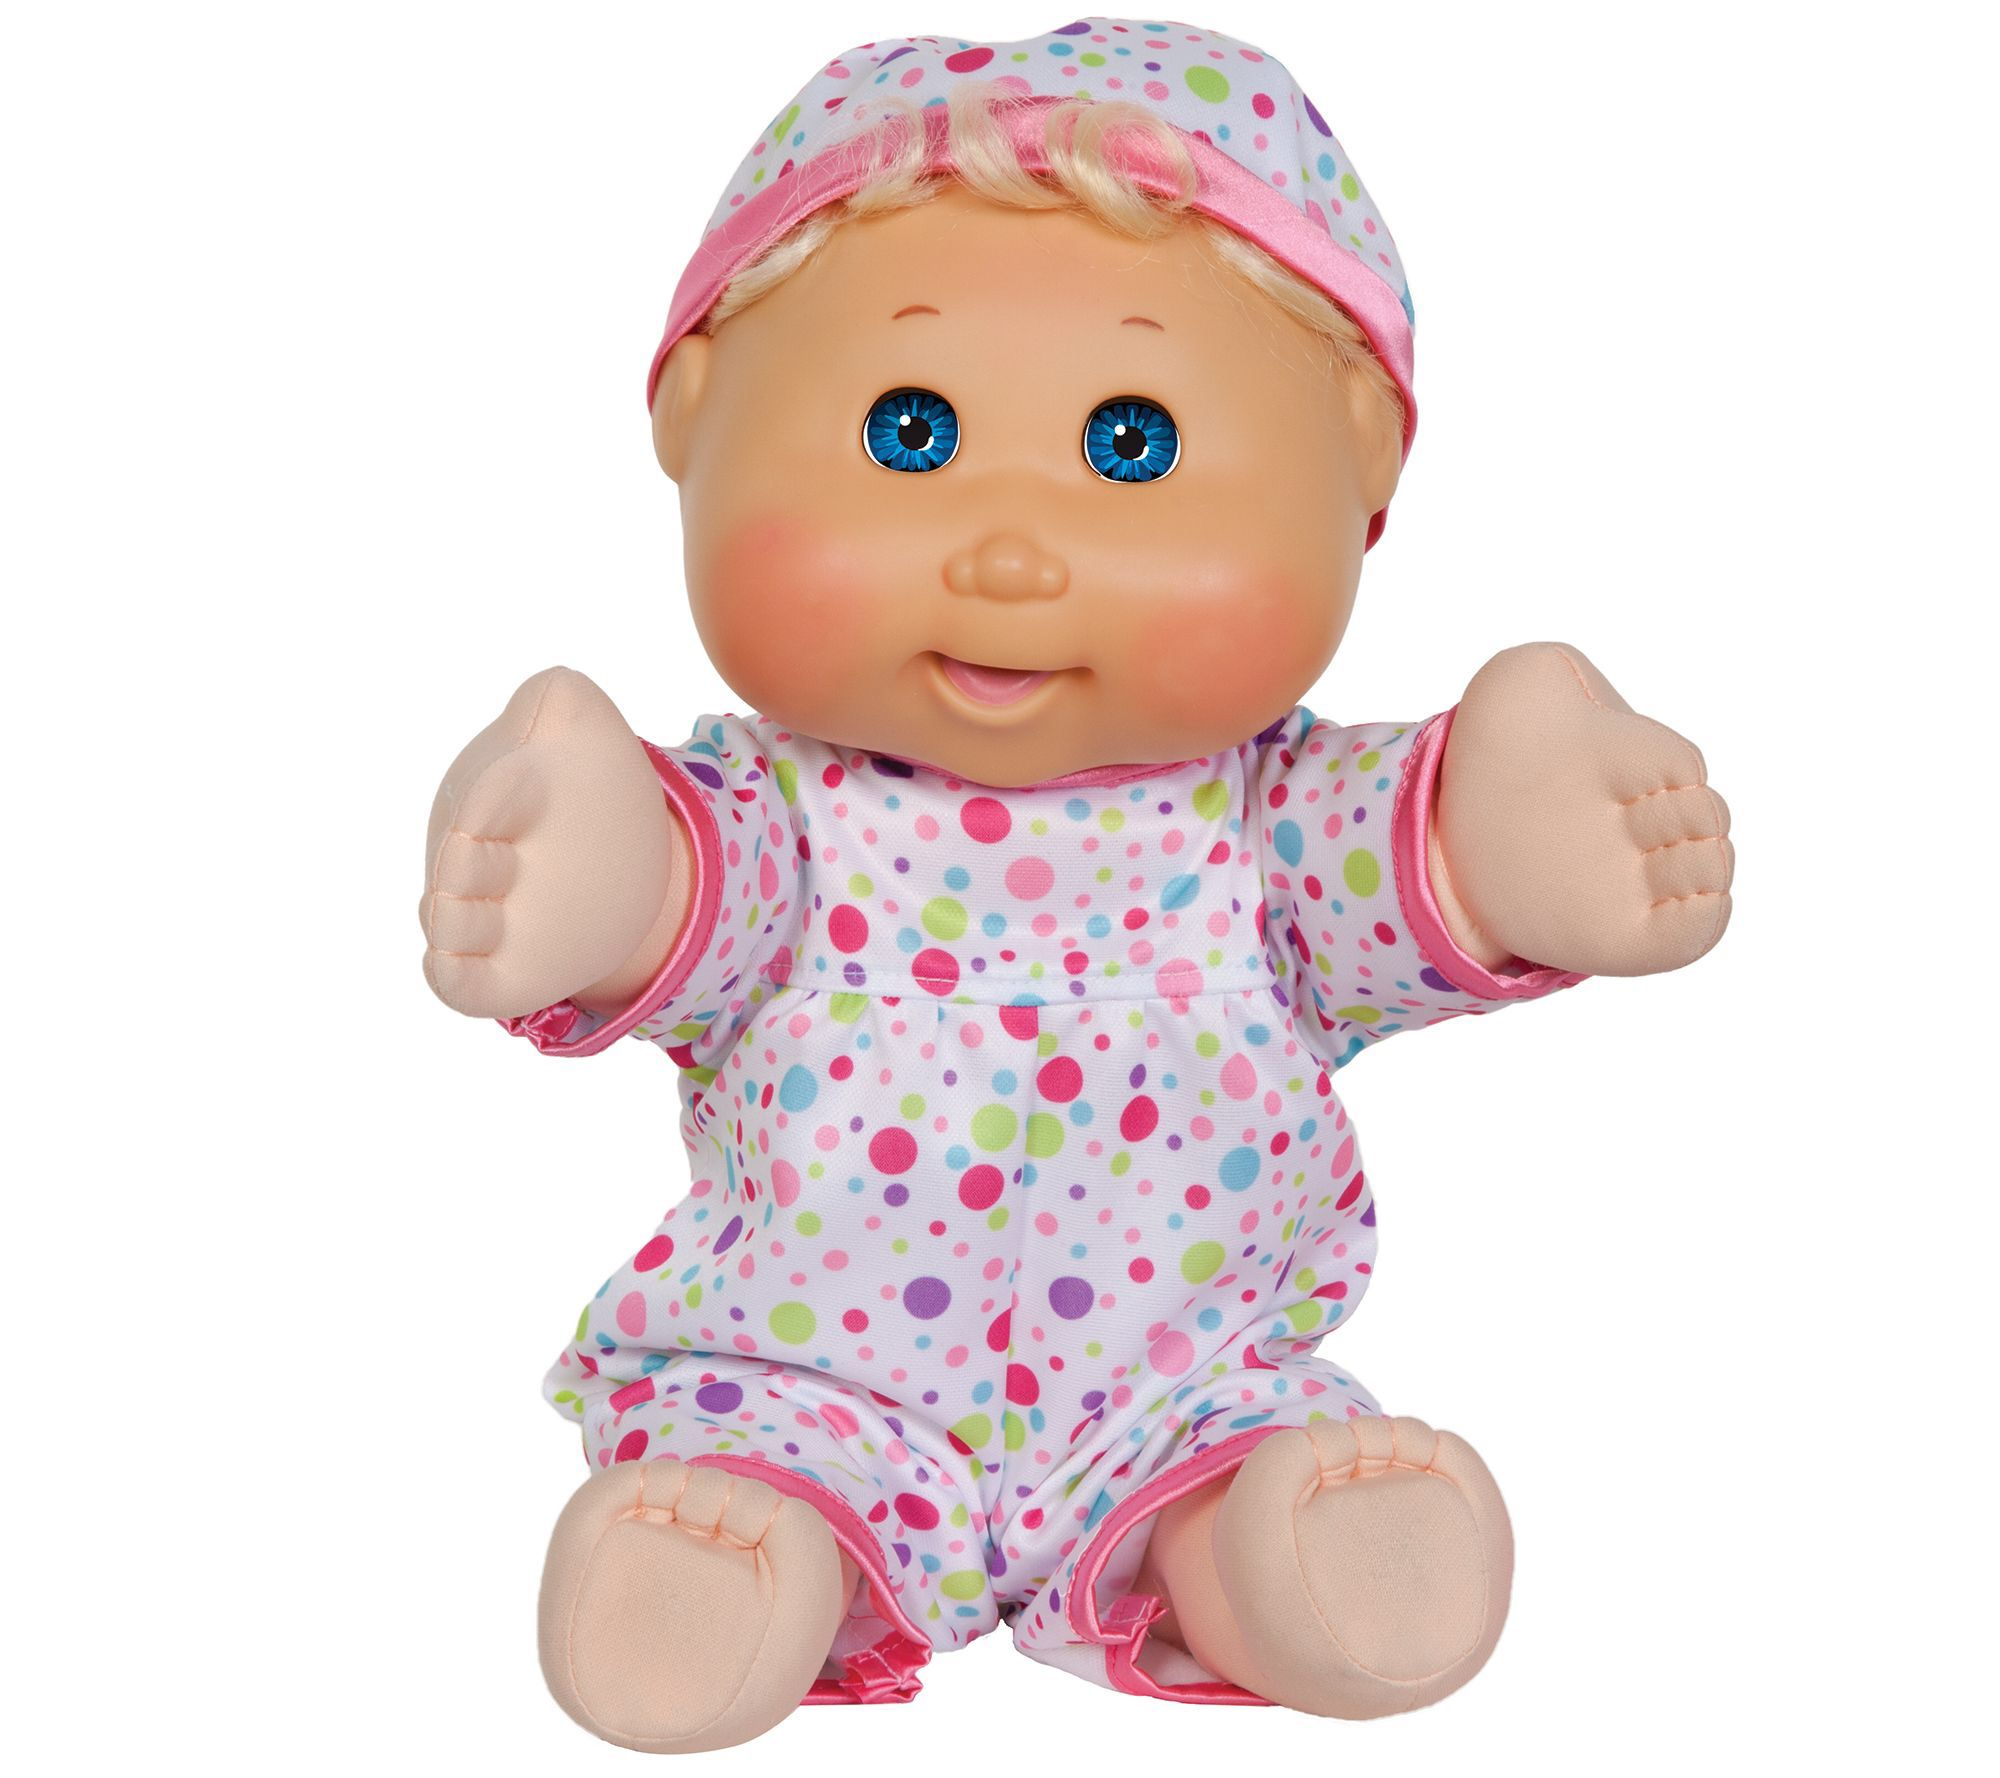 Cabbage Patch Kids 14 Animated Baby So Real Doll Cabbage Patch Kids Dolls Popular Christmas Toys Cabbage Patch Kids